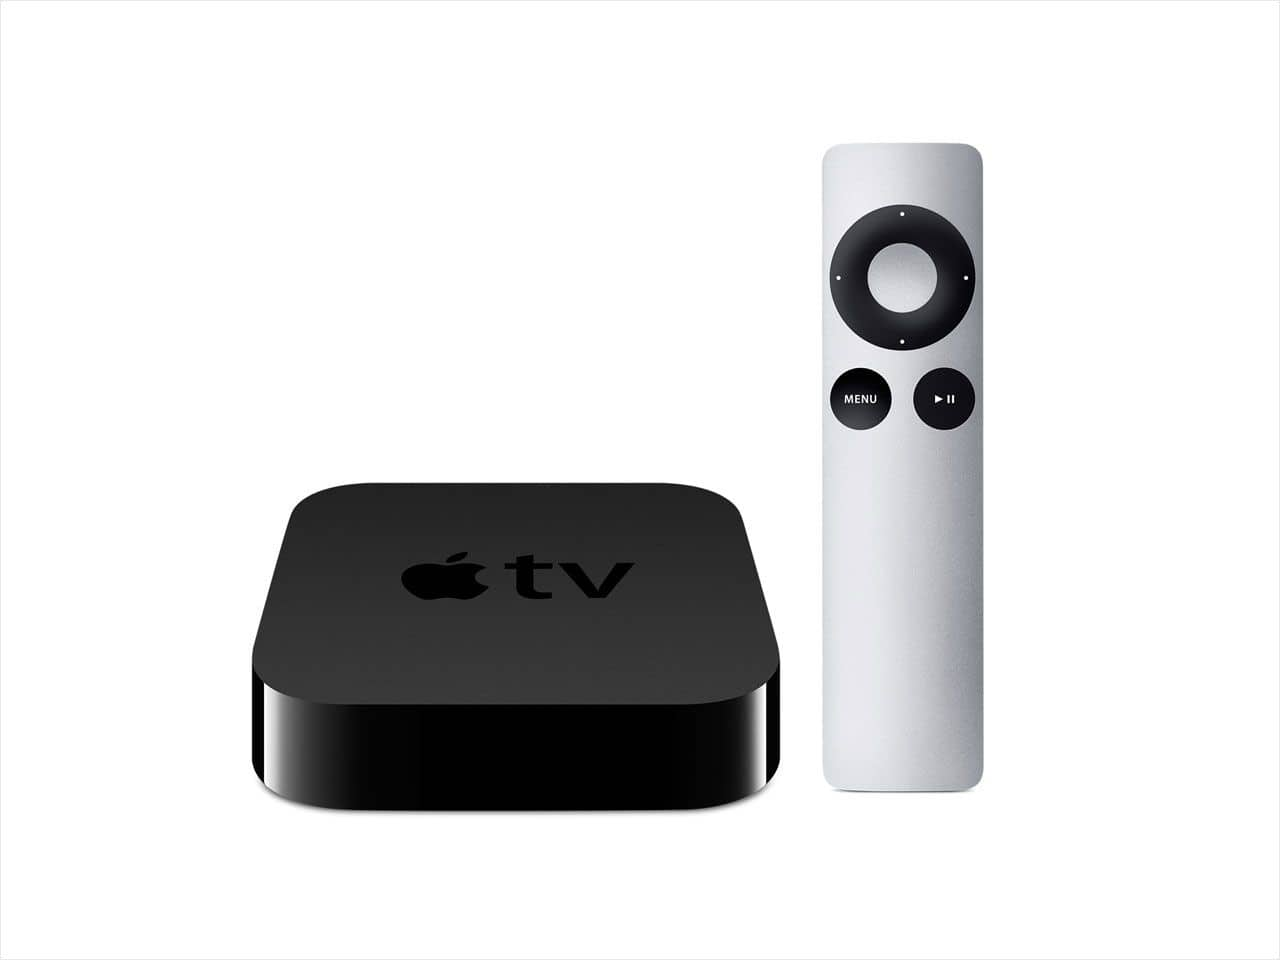 Refurbished: Apple TV MD199LL/A 3rd Gen 1080p HD Media Streamer $39.99 fs @ NF